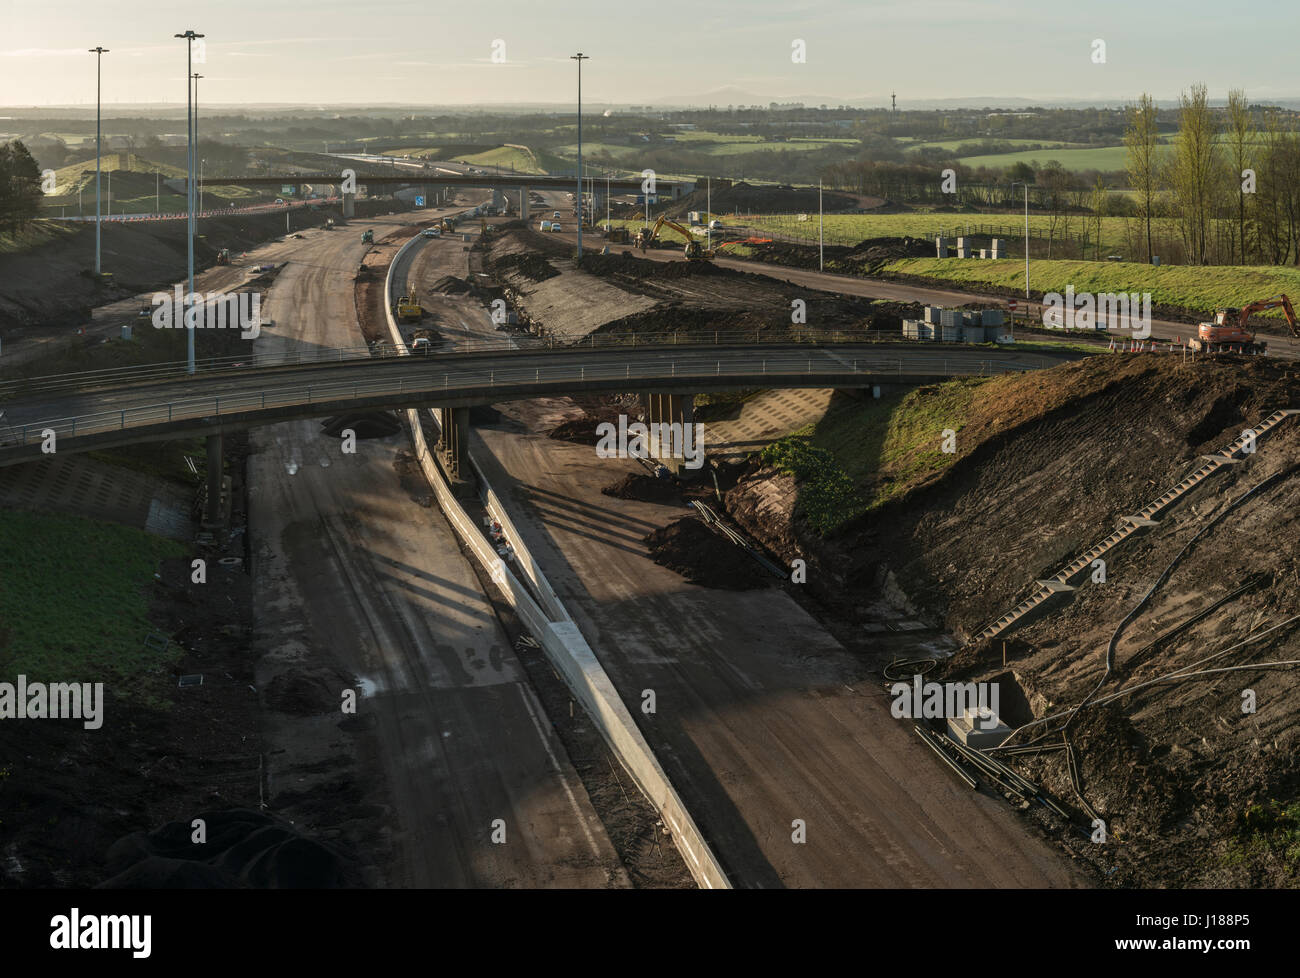 M8 missing link construction work, Glasgow, Scotland, United Kingdom - Stock Image